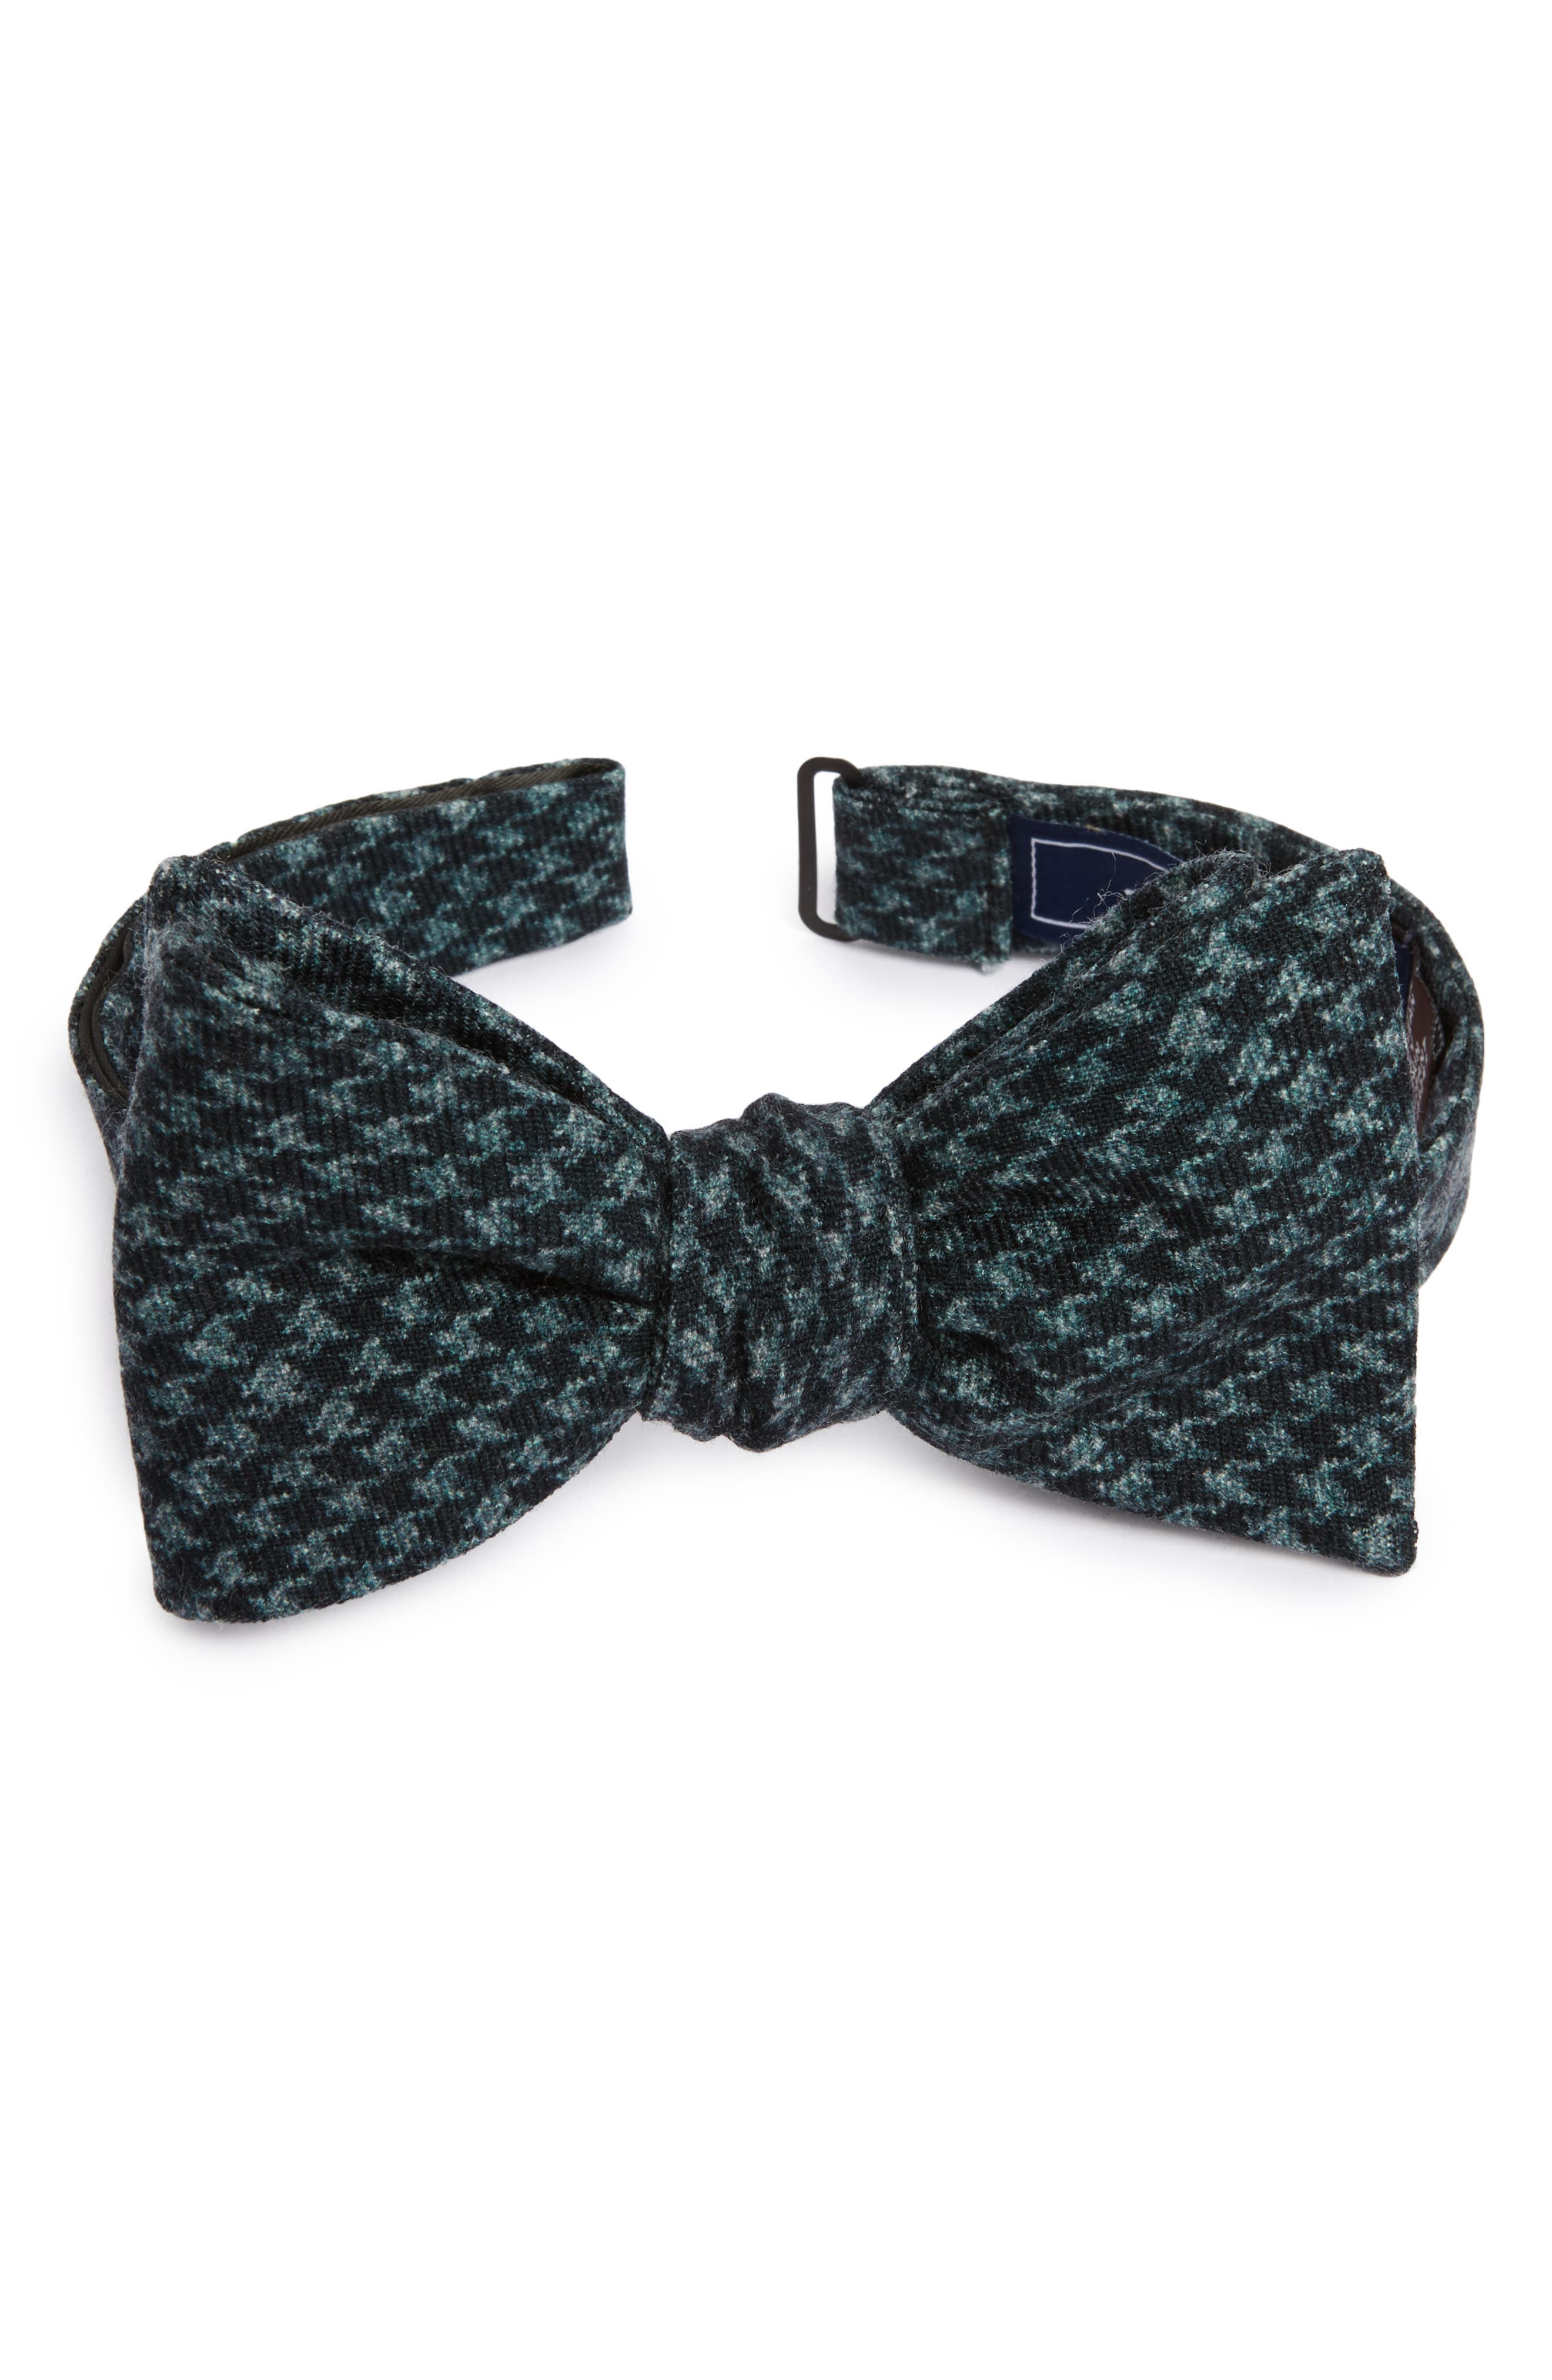 Woolf Houndstooth Wool Bow Tie,                         Main,                         color, 001